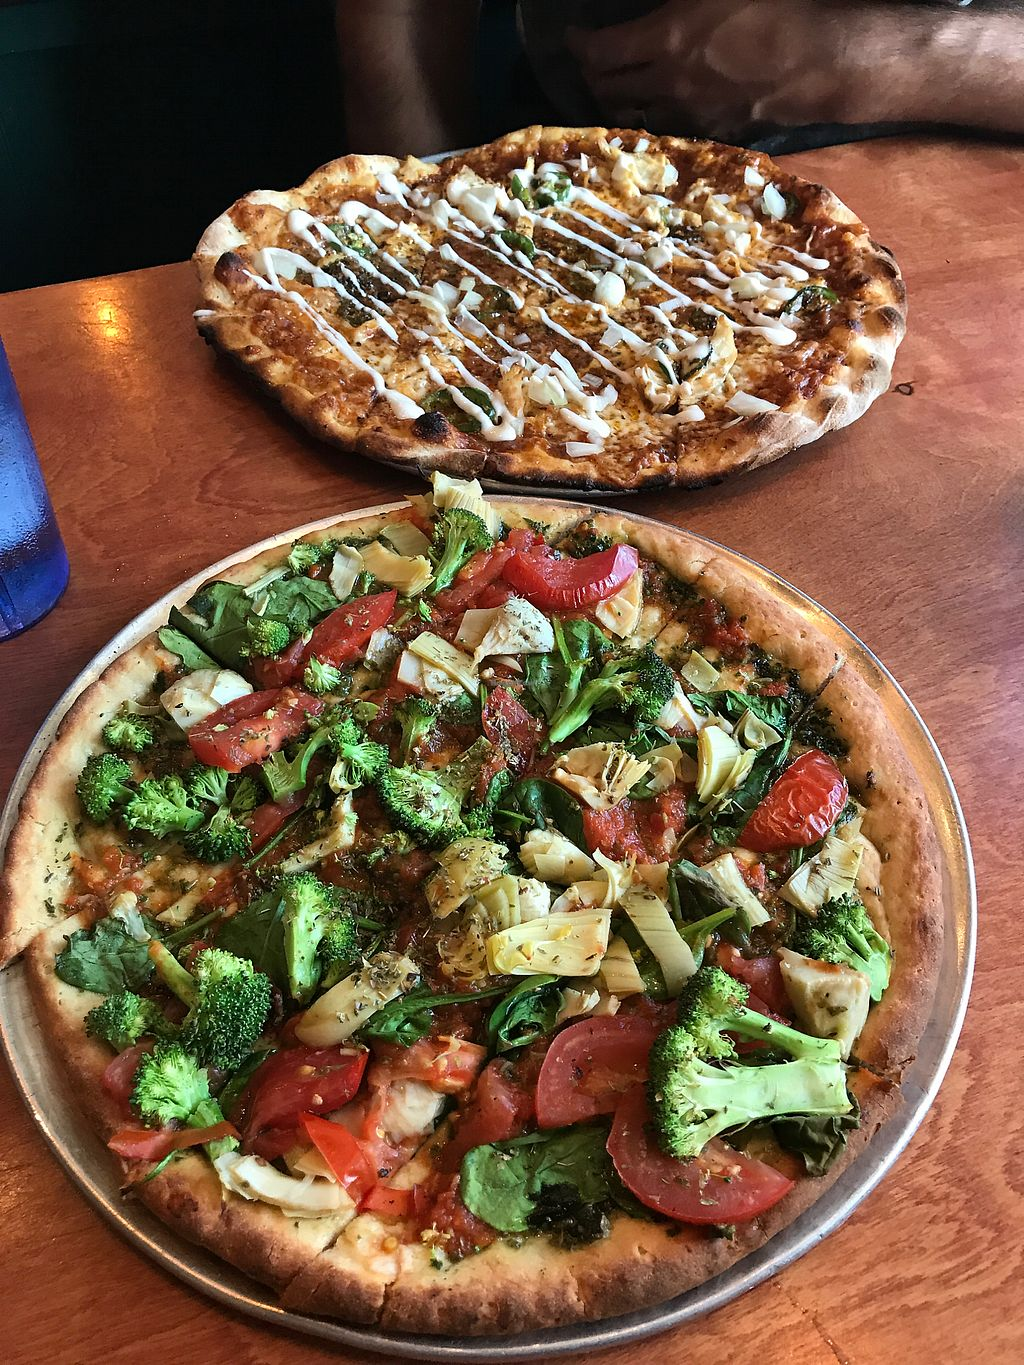 """Photo of Flatbread Pizza  by <a href=""""/members/profile/AmandaBoles"""">AmandaBoles</a> <br/>Vegan gf pizza on the bottom, topped with pesto mixed with their organic red sauce, local broccoli & tomatoes, artichokes and spinach.  <br/> November 4, 2017  - <a href='/contact/abuse/image/13104/321690'>Report</a>"""